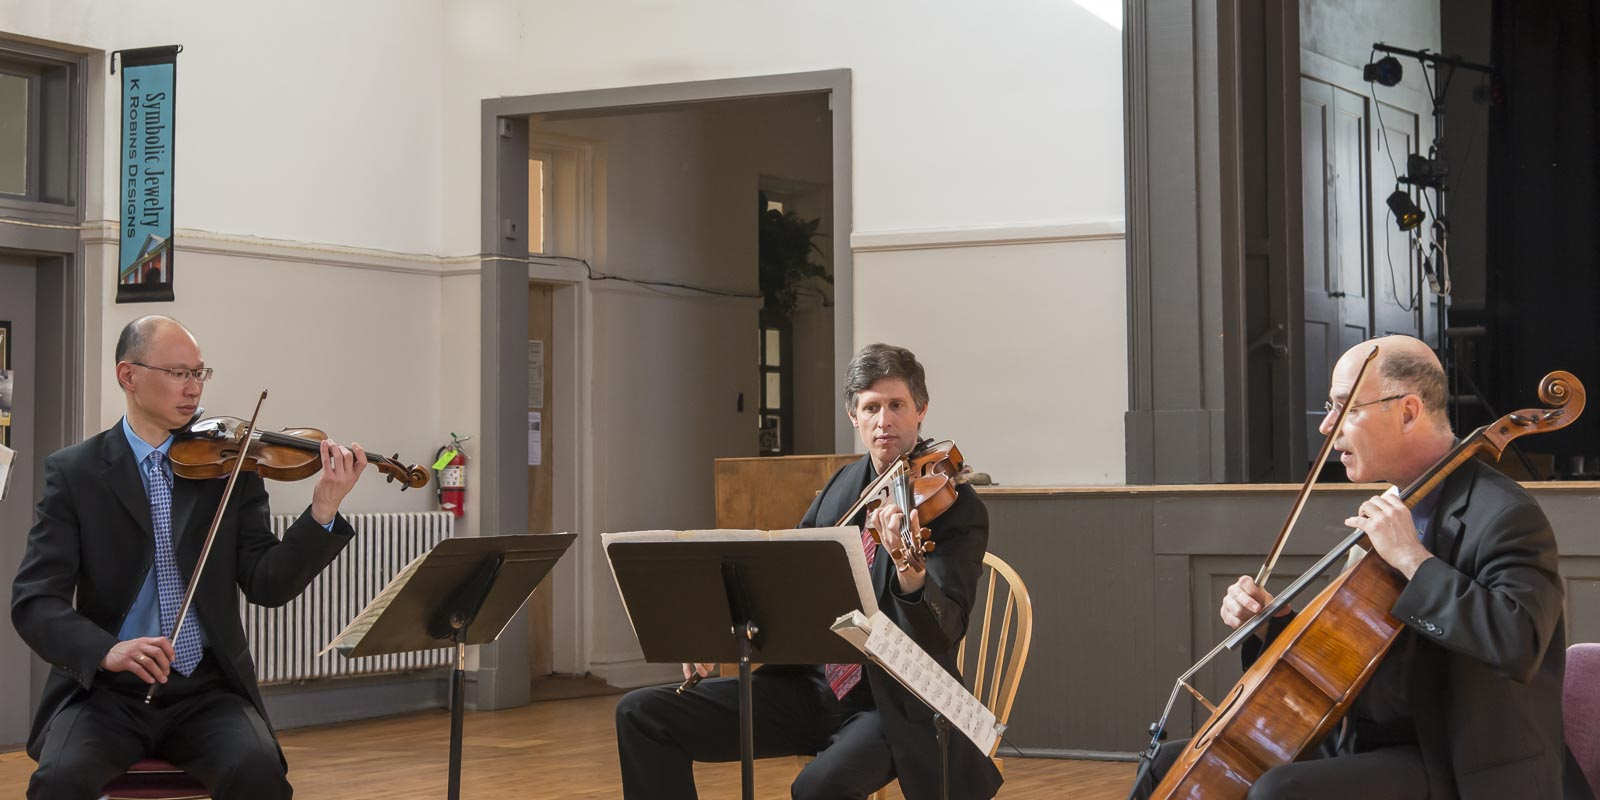 The Adaskin String Trio played a diverse and fulfilling selection of music from Beethoven to Michael White - and even some Paul Simon and StefaneGrappelli.